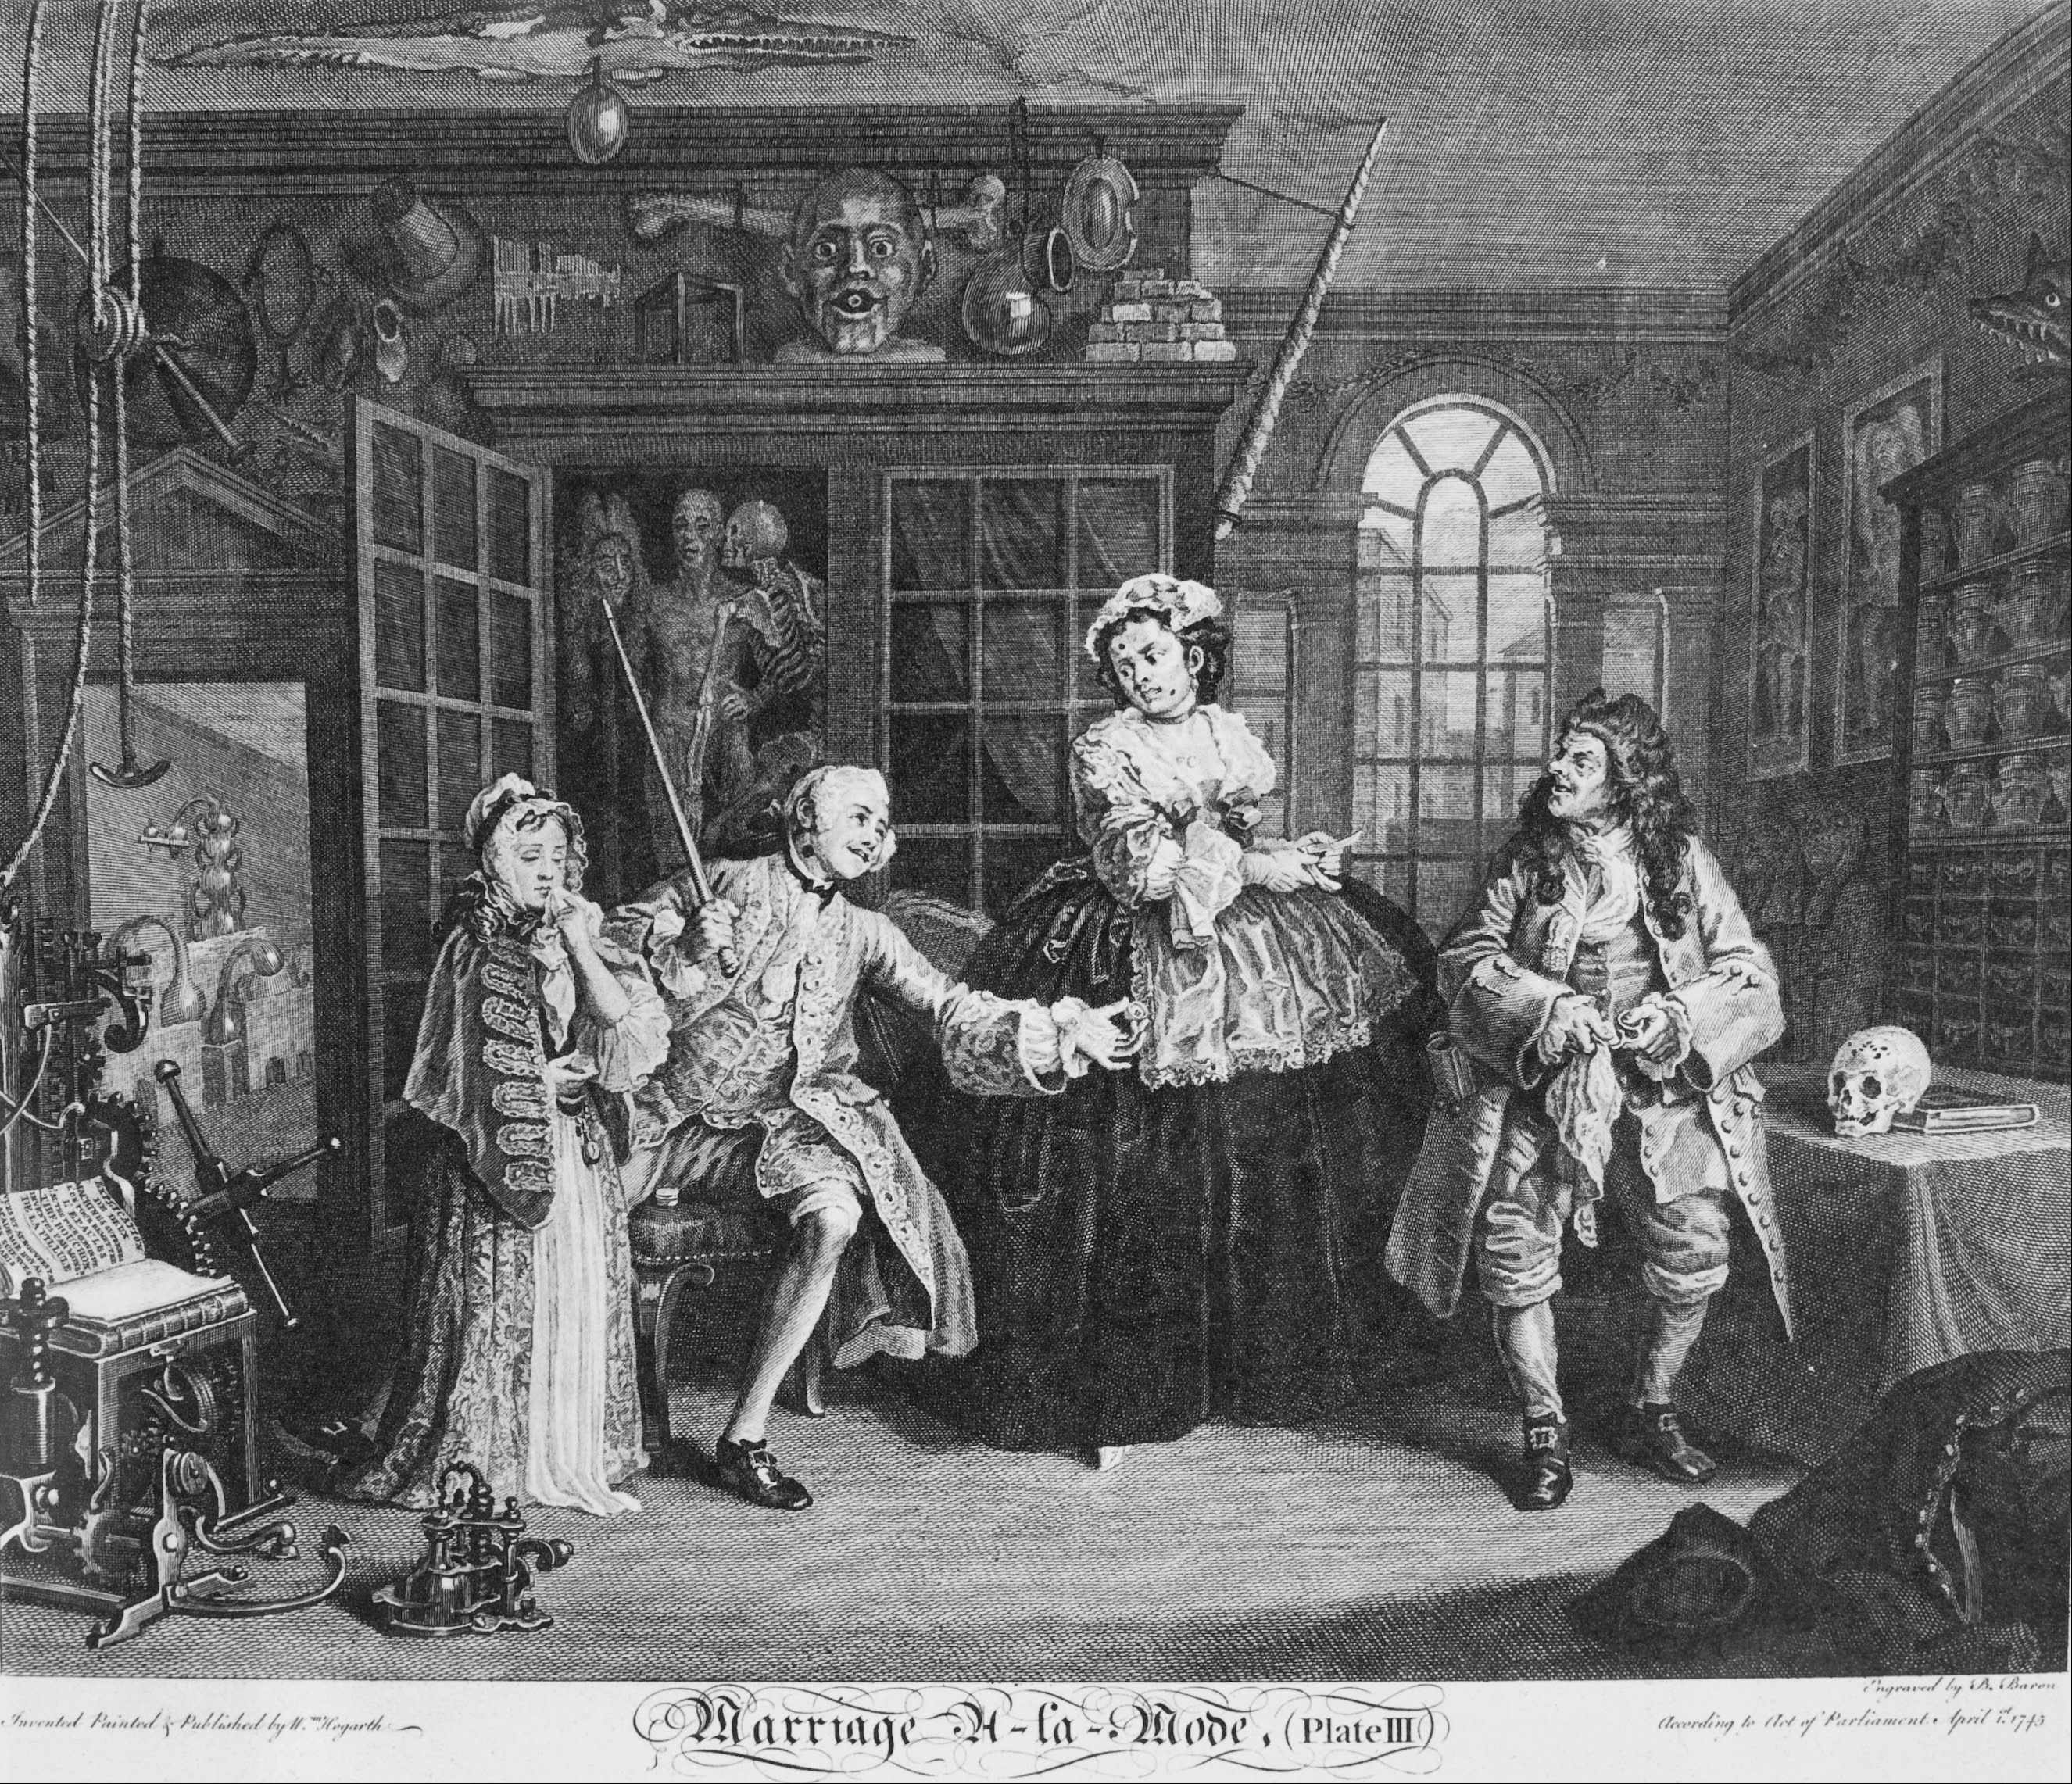 the education of women daniel defoe summary Get an answer for 'why did defoe write his essay on the education of women' and find homework help for other daniel defoe questions at enotes.